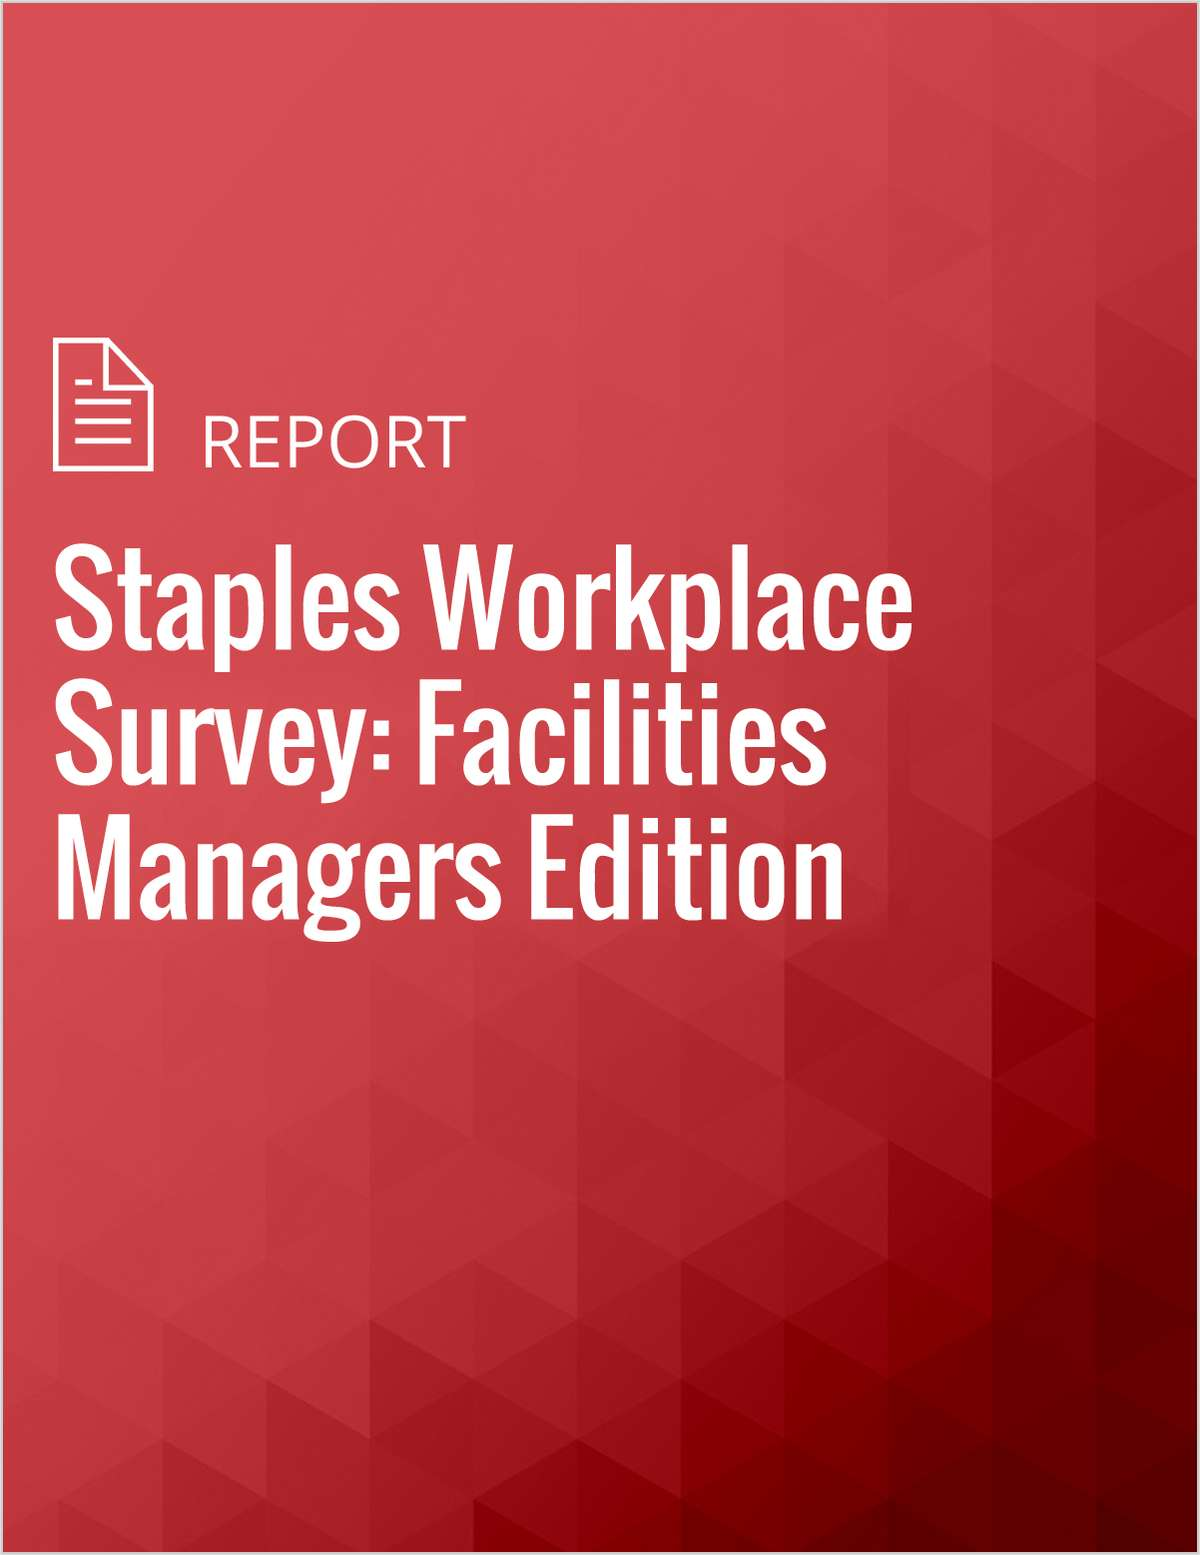 Staples Workplace Survey: Facilities Managers Edition